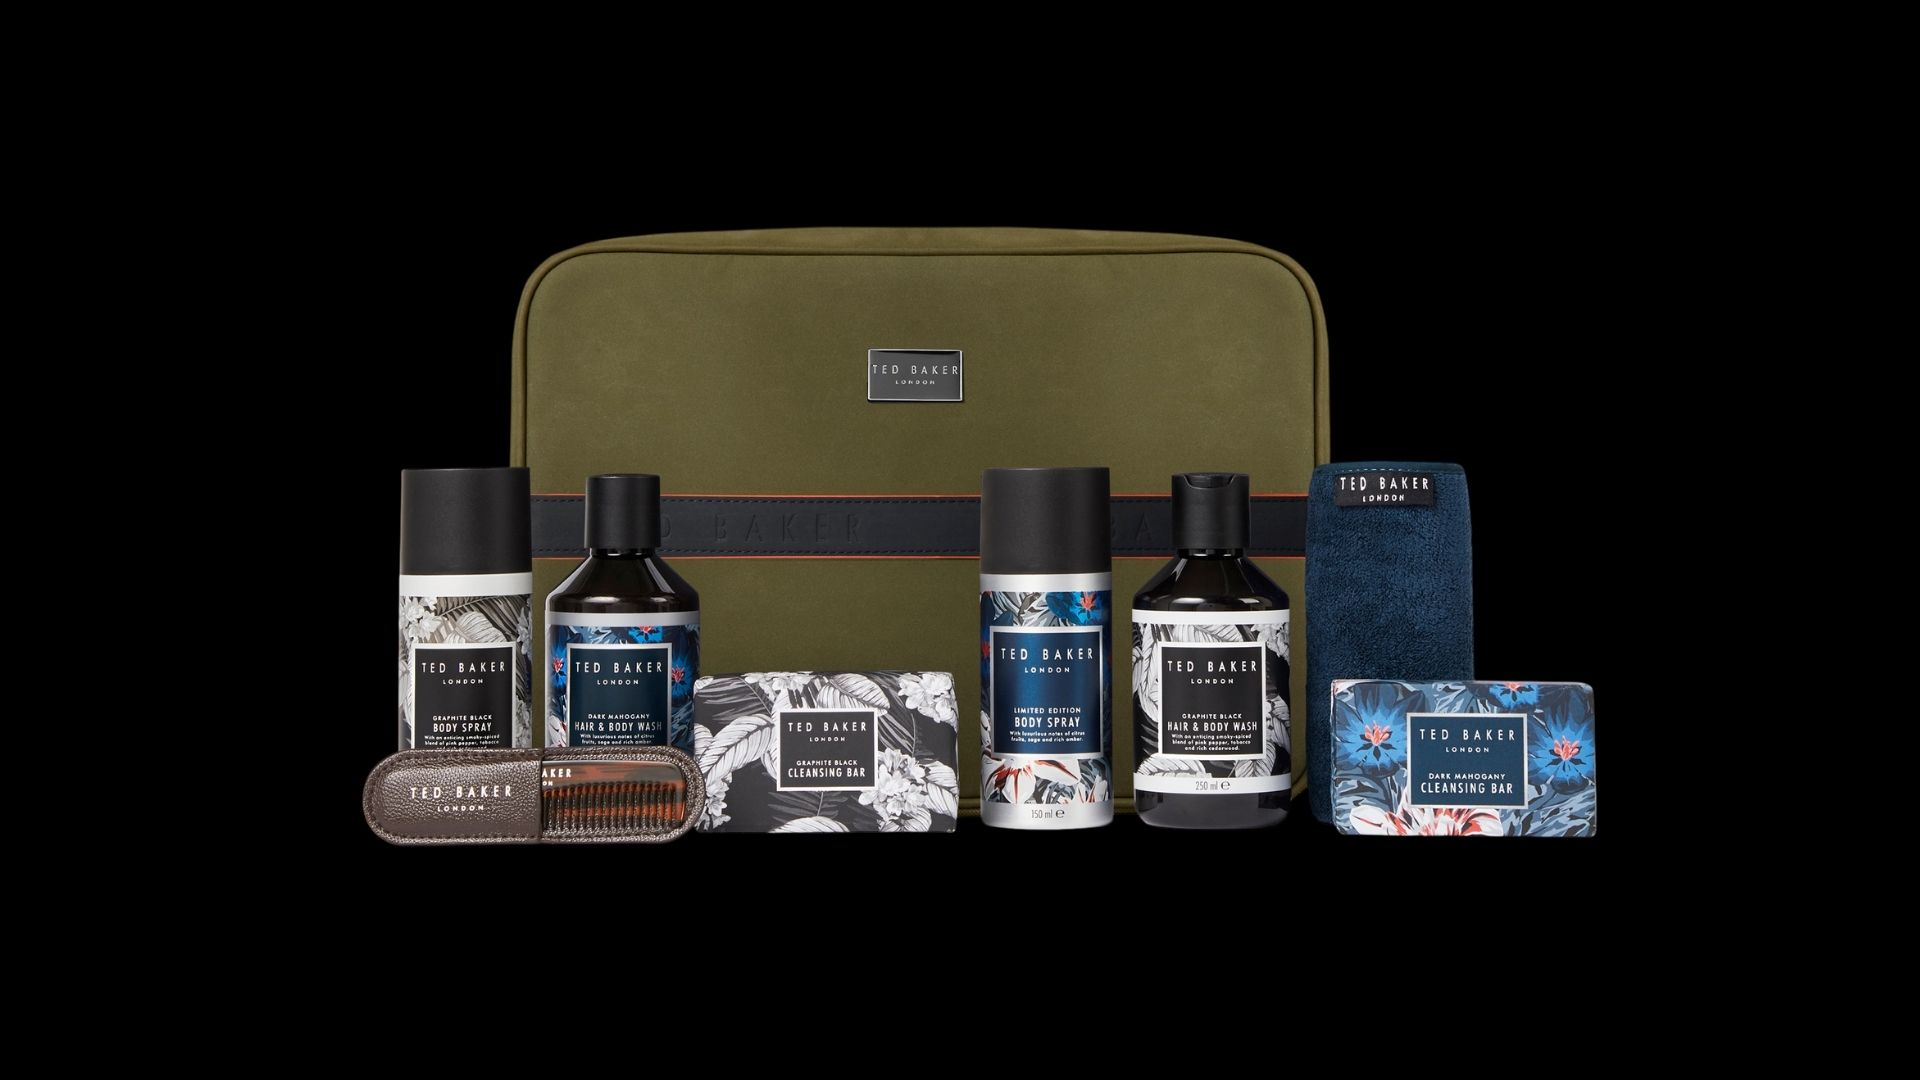 Christmas Gifts For Him: Ted Baker - Ted About Town Toiletries Travel Pouch Christmas Gift Set